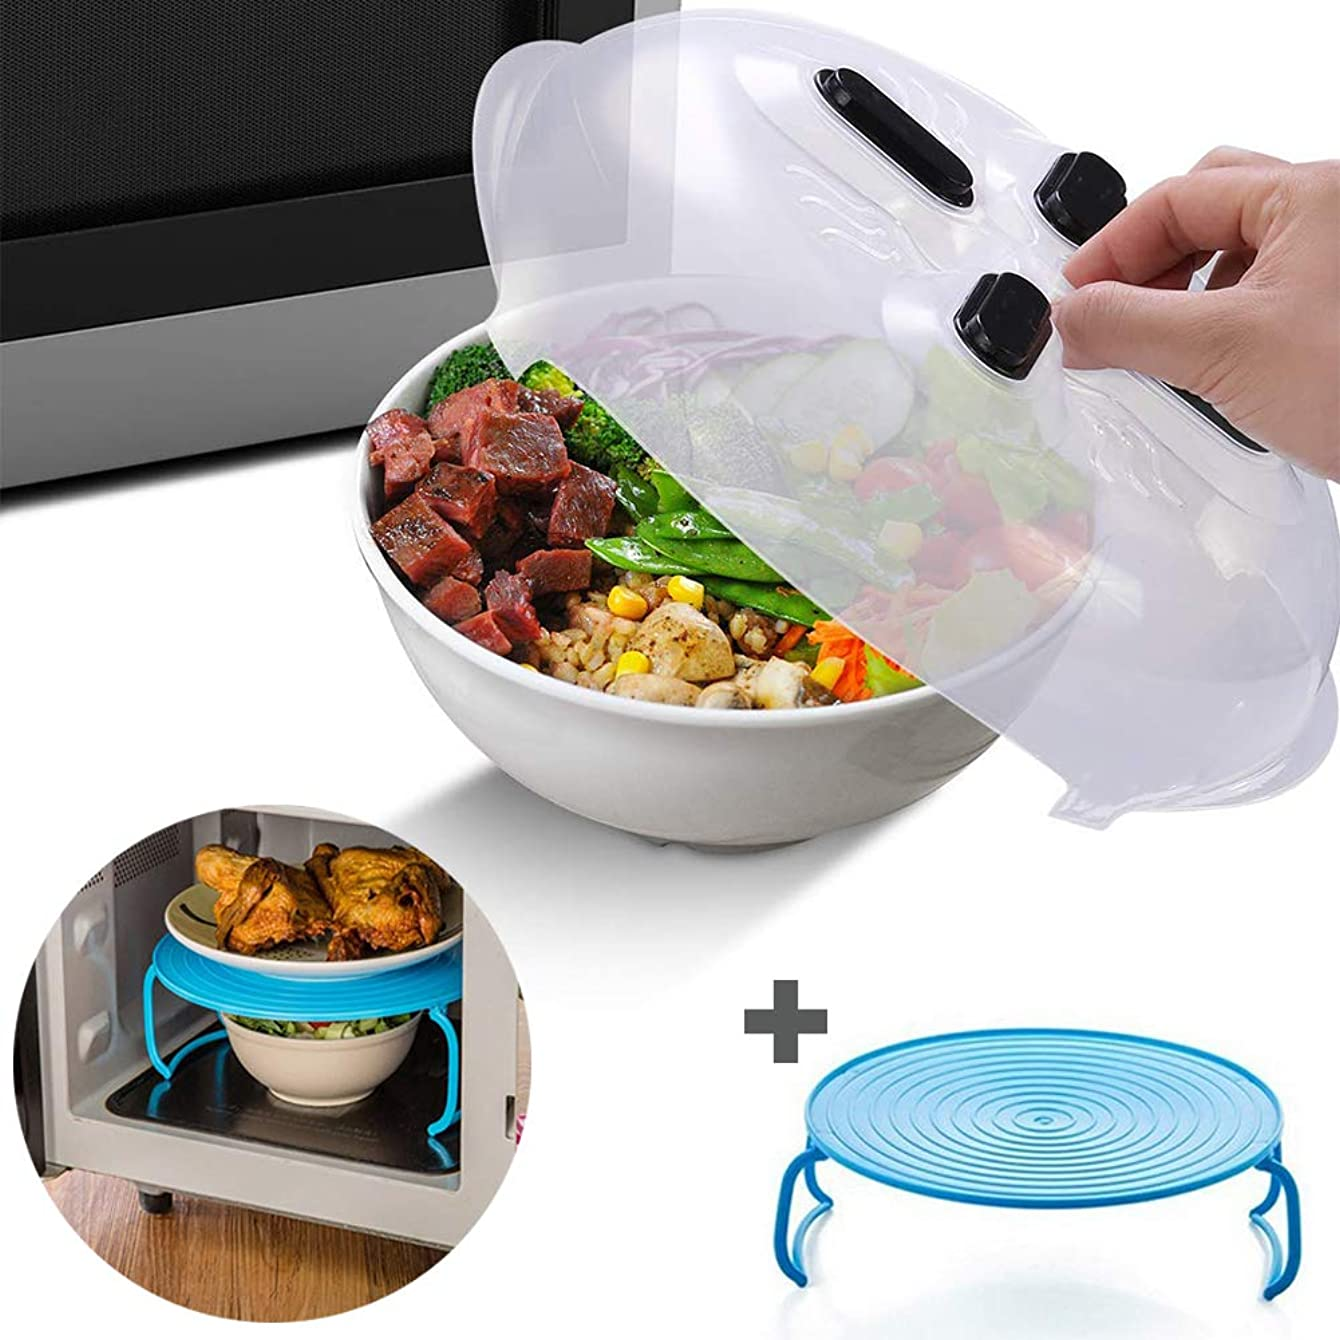 Magnetic Microwave Cover Splatter Guard Lid with Steam Vent for Stainless Steel Microwaves–Full Plate Coverage–Hover– Dishwasher Safe- Anti-Sputtering